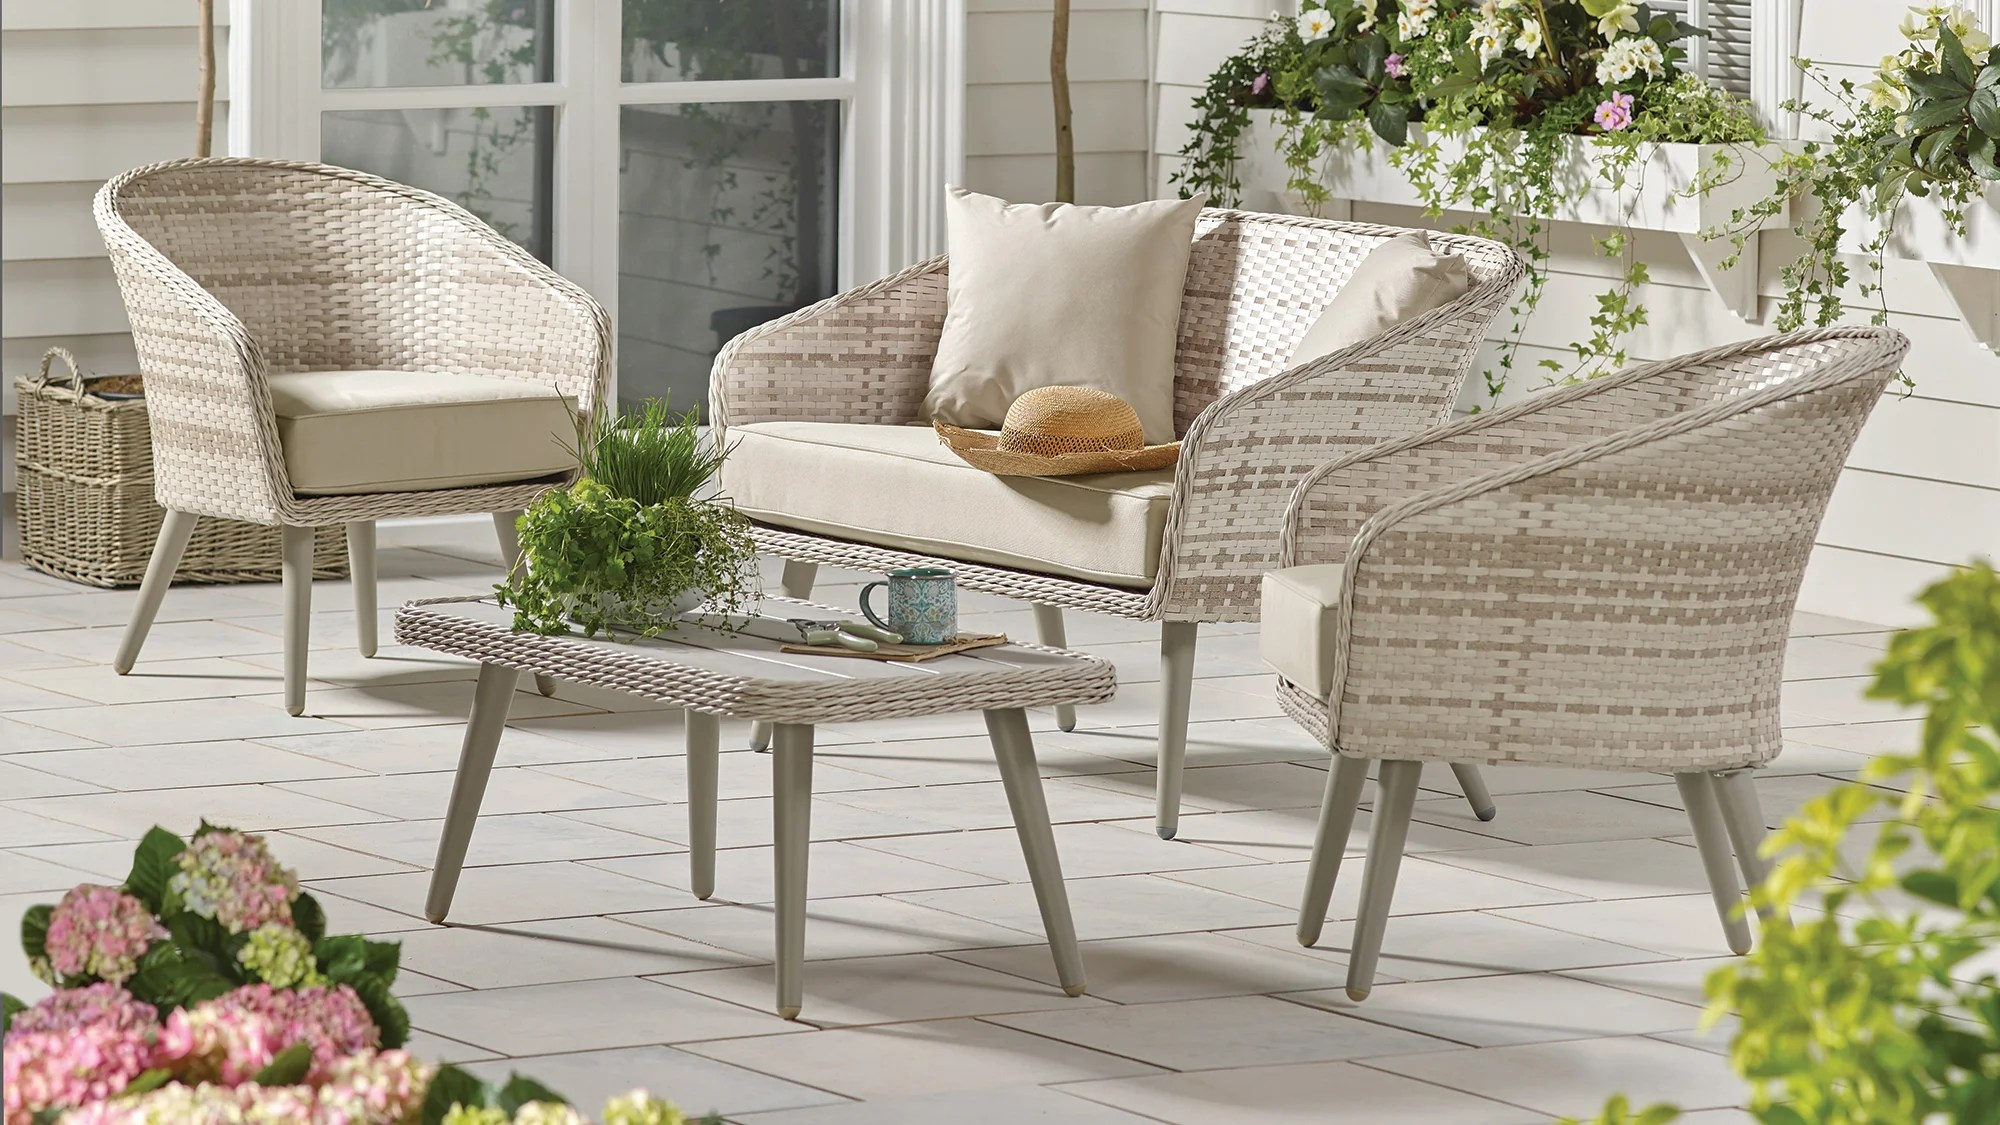 Pearl Daybed Outdoor Best Garden Furniture 2019 Make The Most Of The Summer